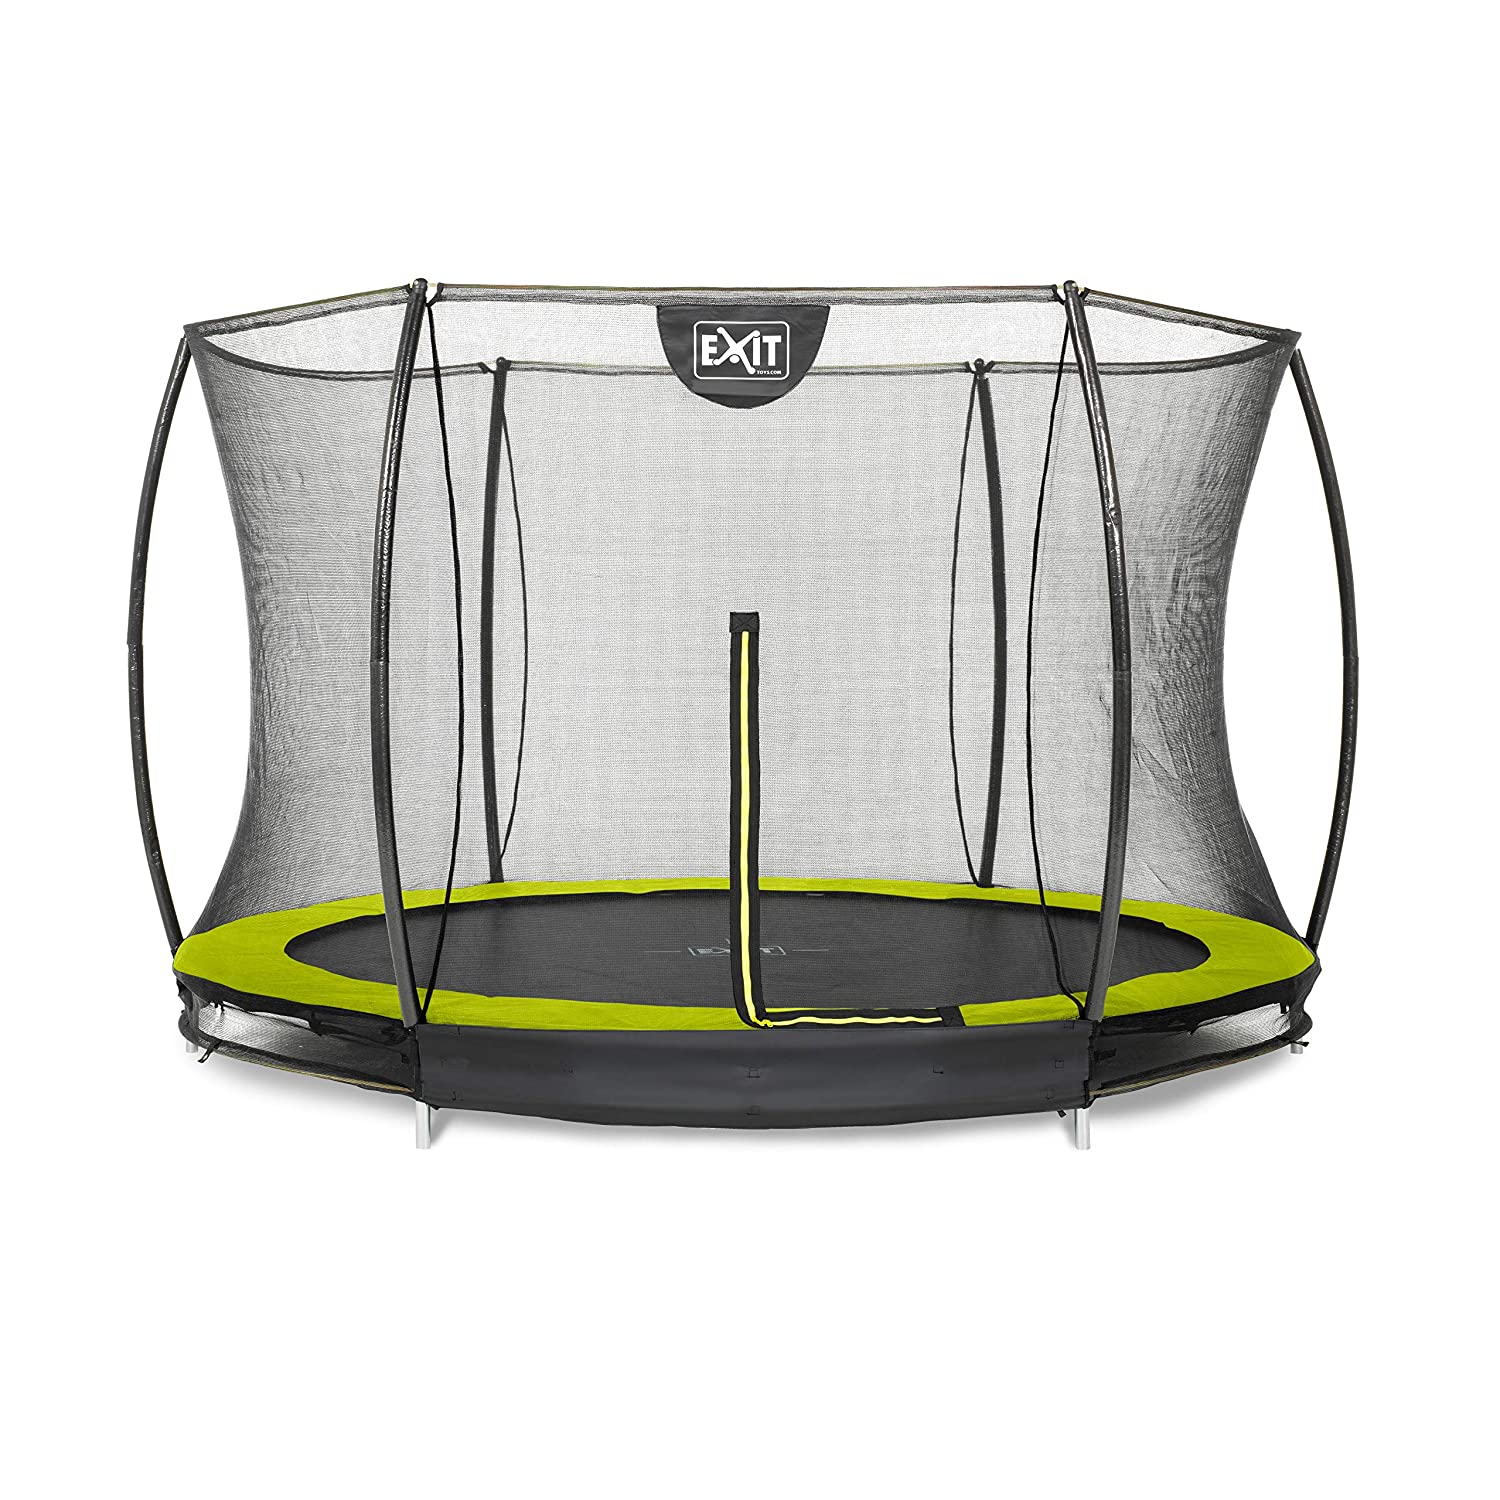 Exit - Silhouette Ground + Safetynet 305 (10ft) Limone